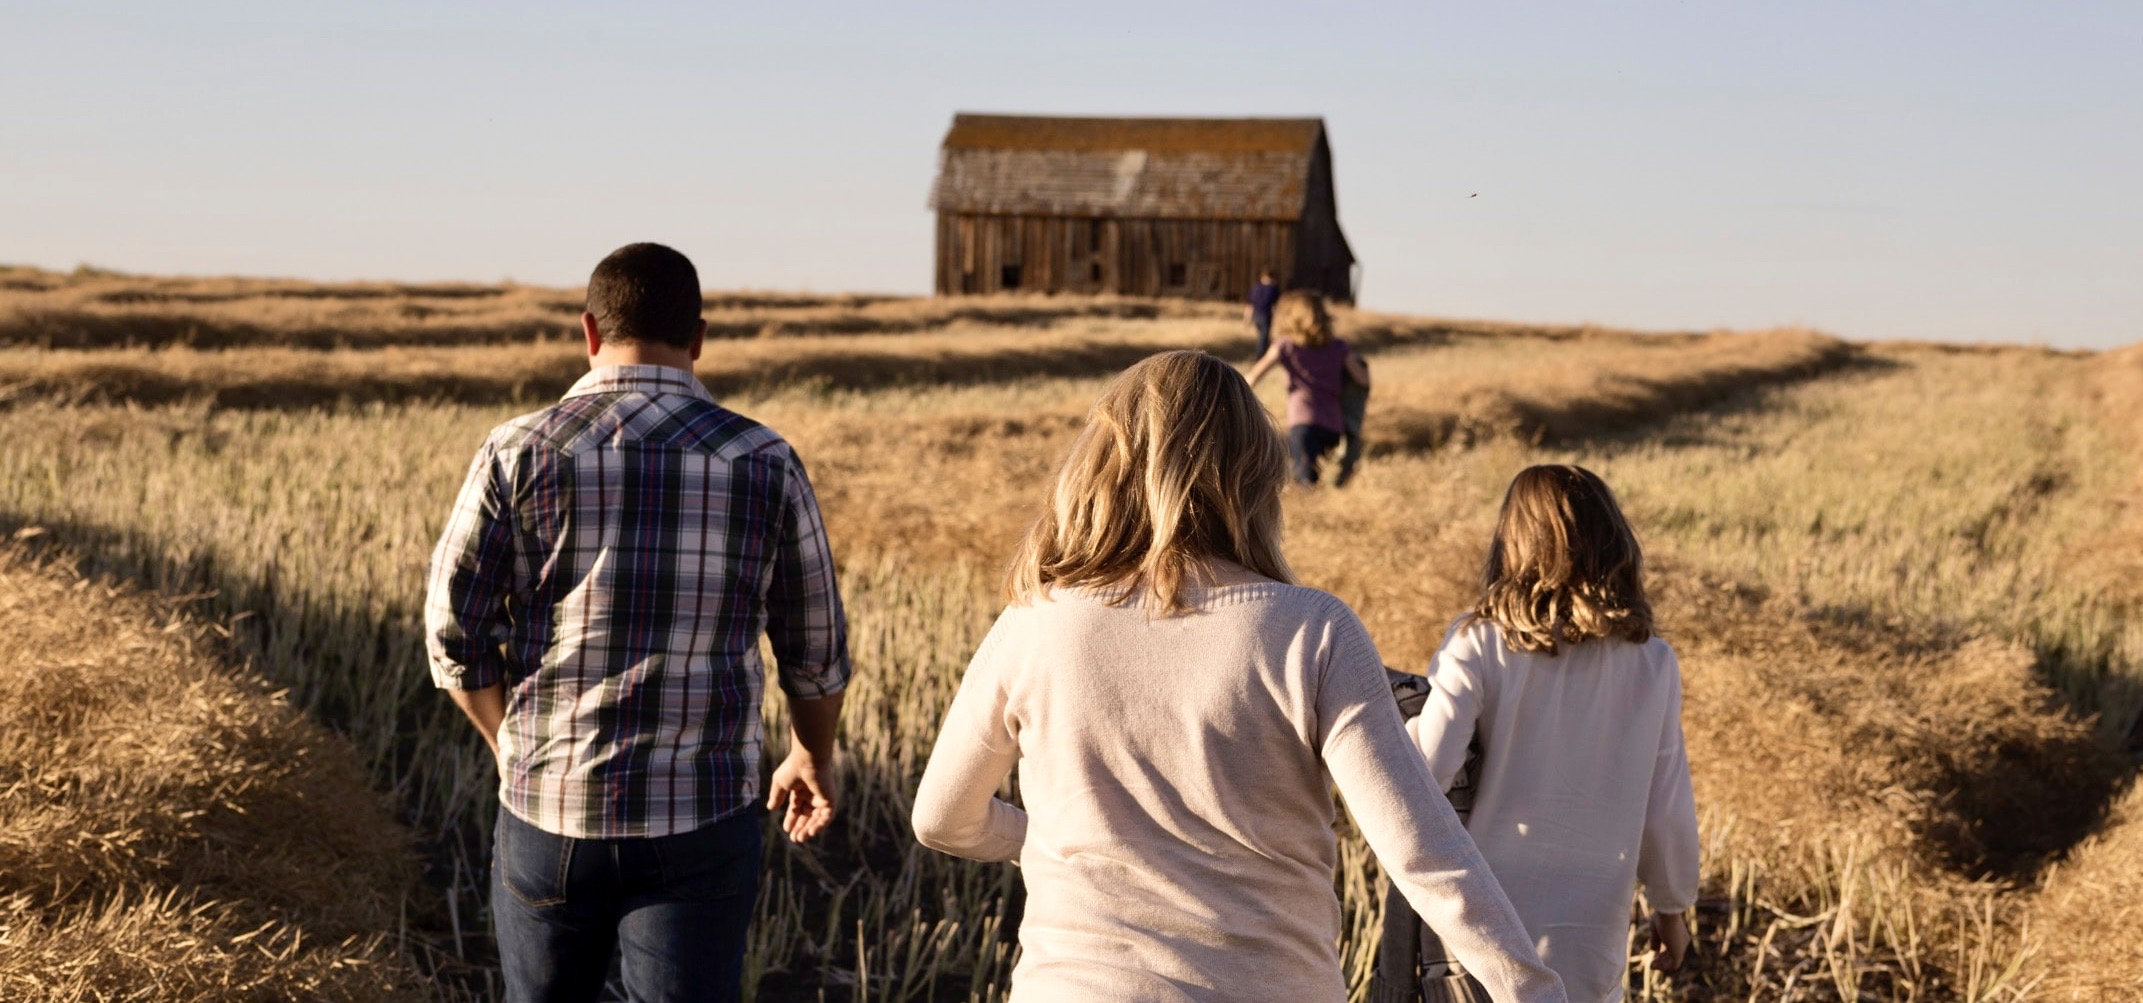 KCCMH was awarded a Performance Leadership Quality Award!